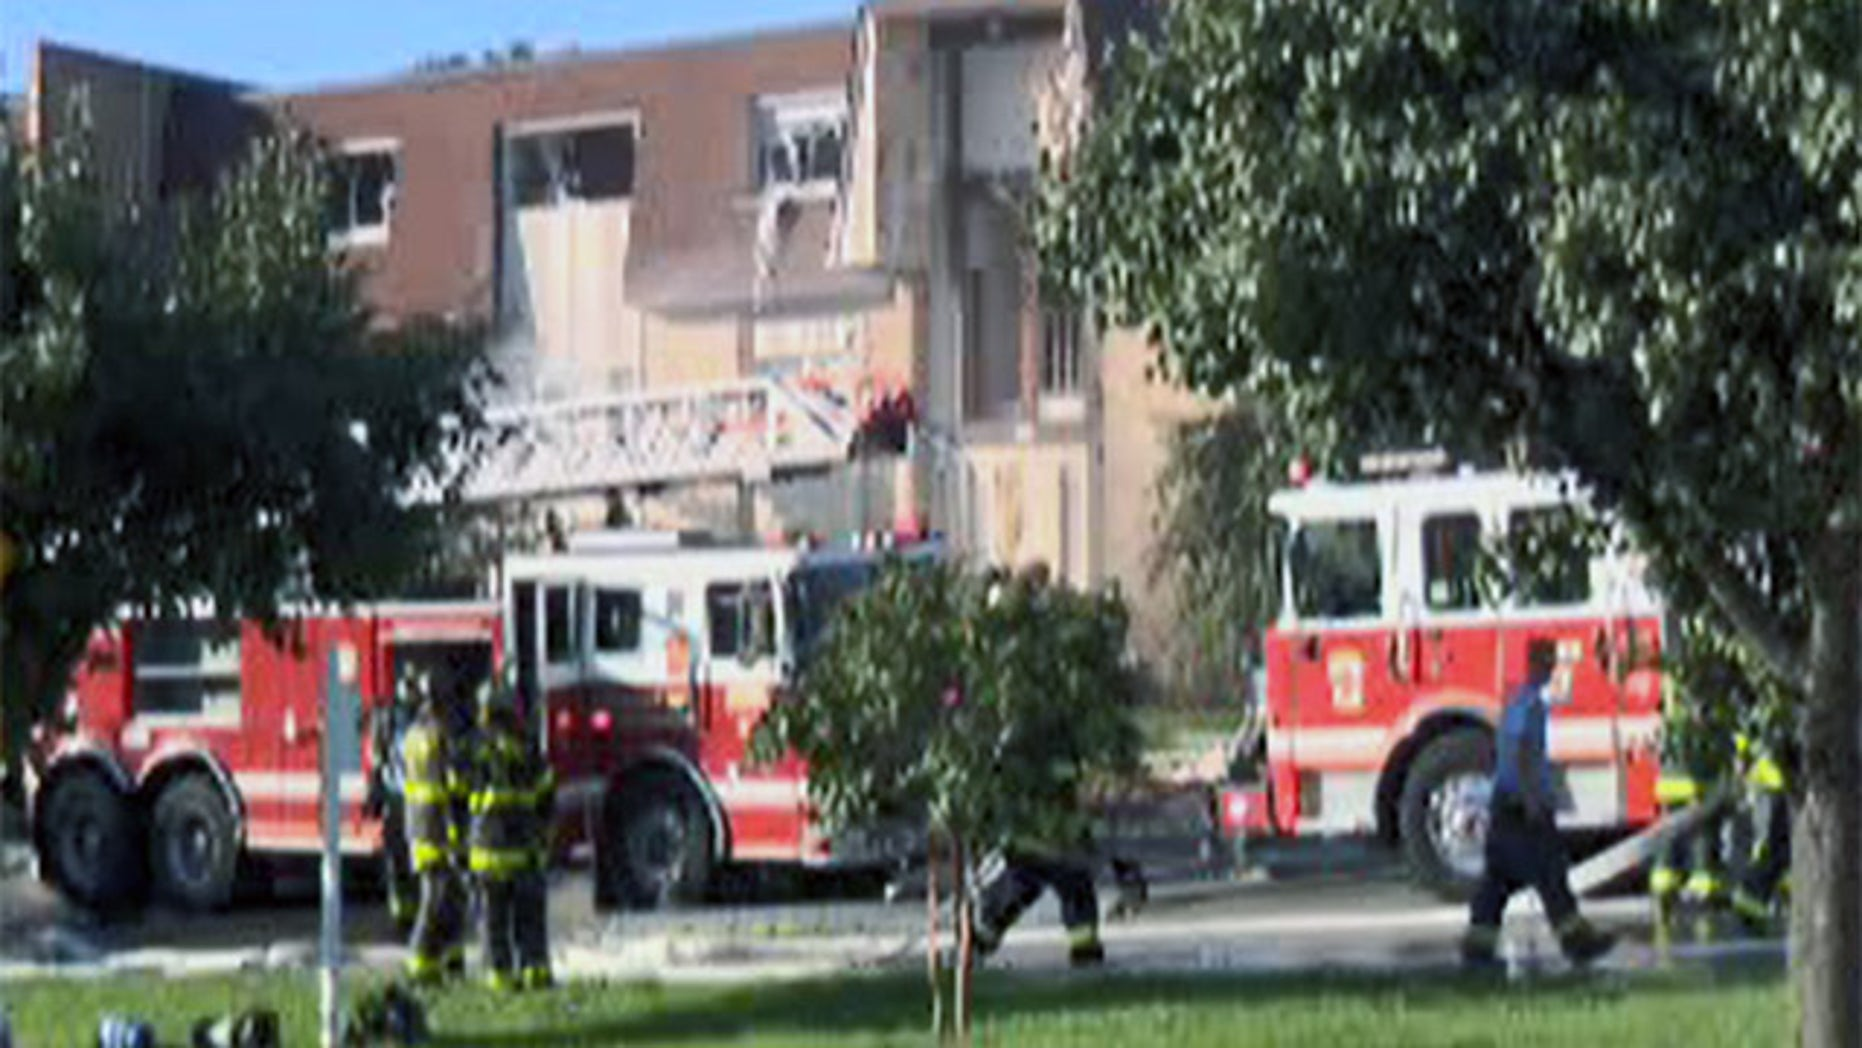 Firefighters respond to a gas explosion in Baltimore Wednesday.